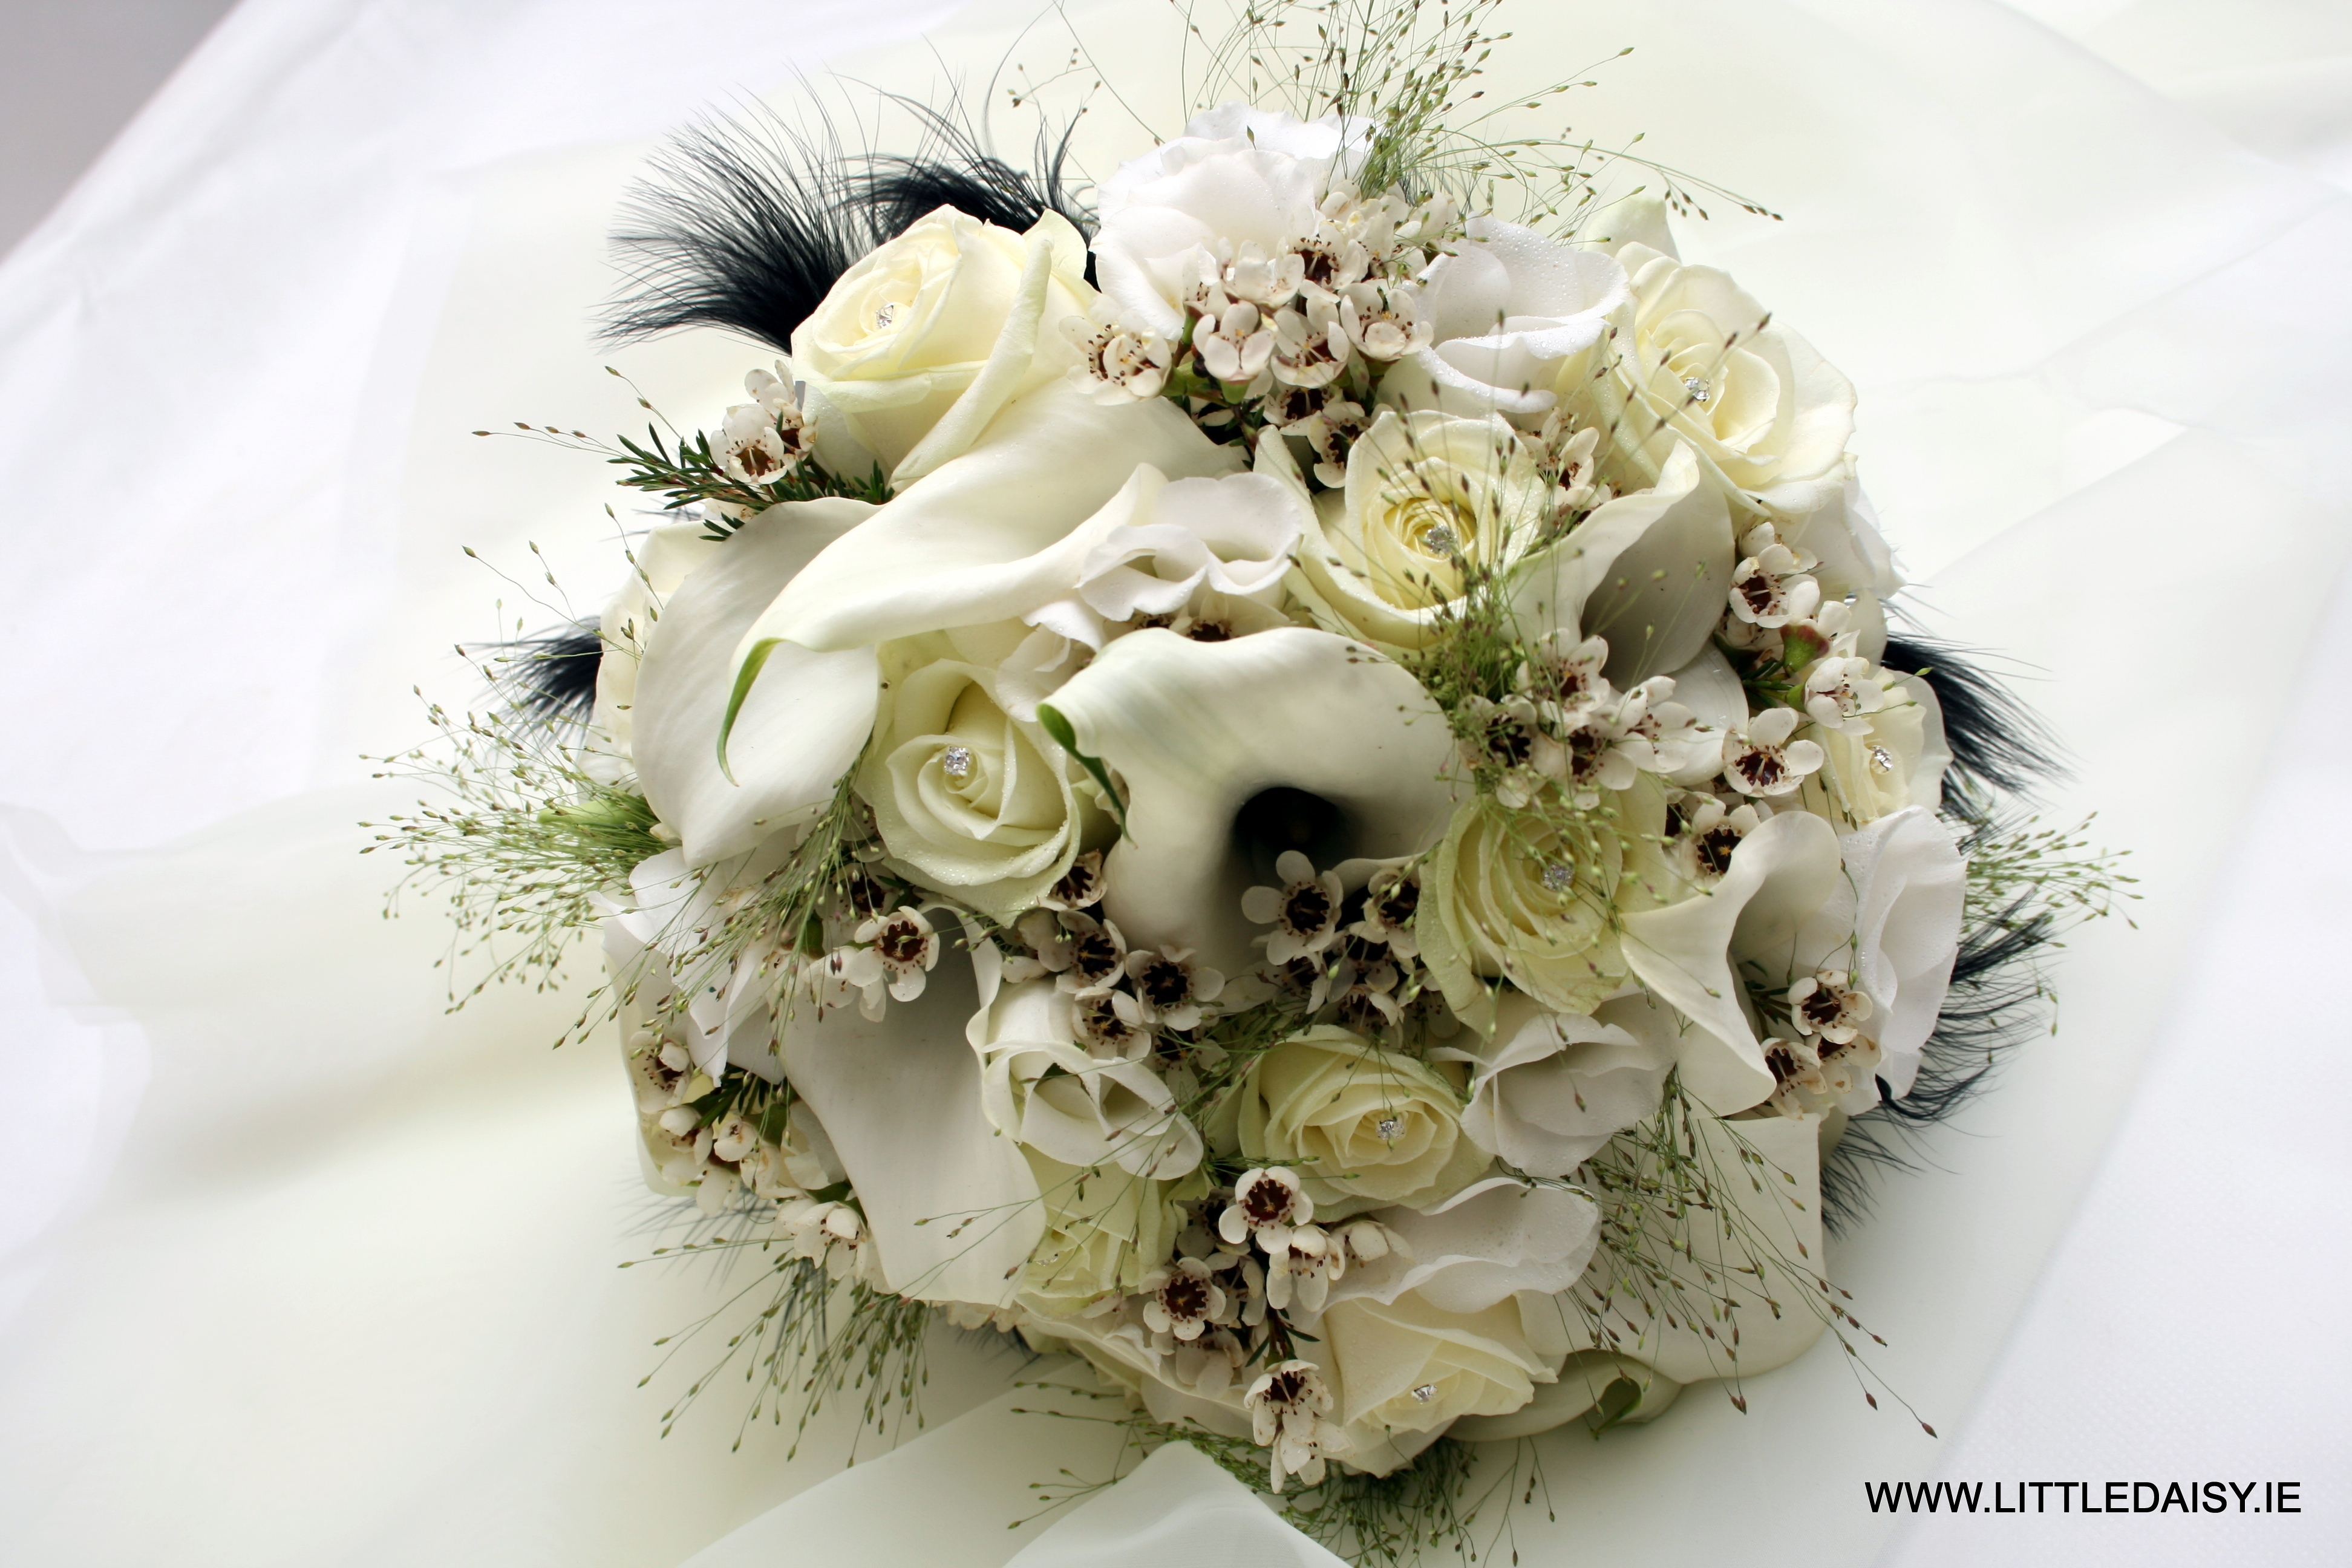 White calla lilly bouquet